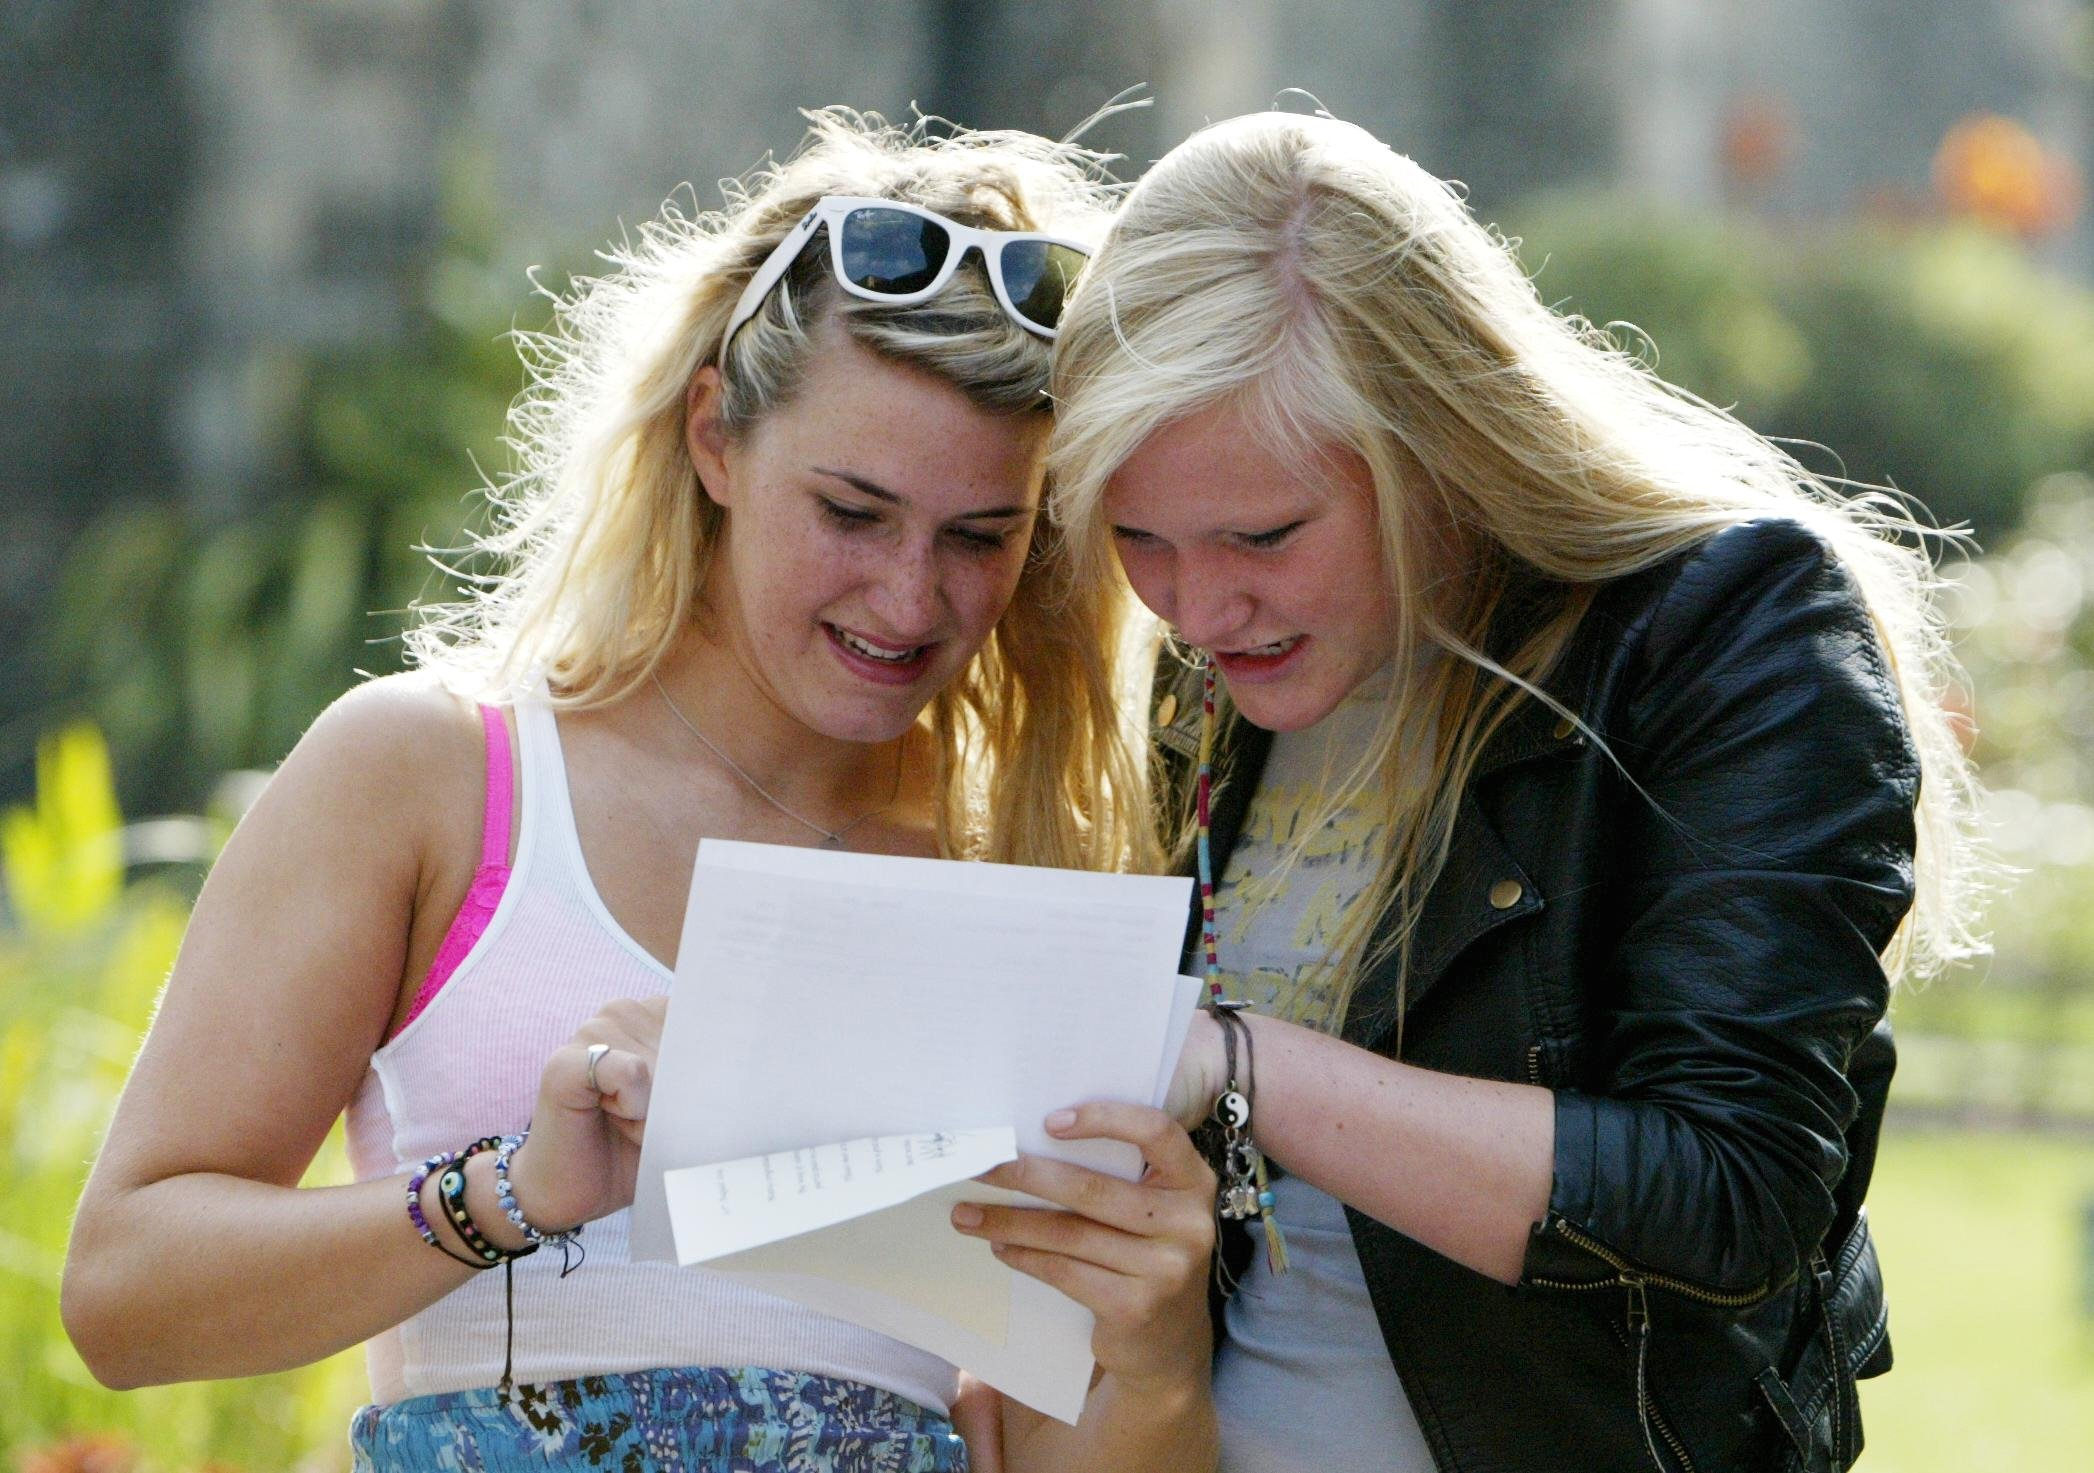 Students will collect GCSE results tomorrow. Gareth Fuller/PA Wire